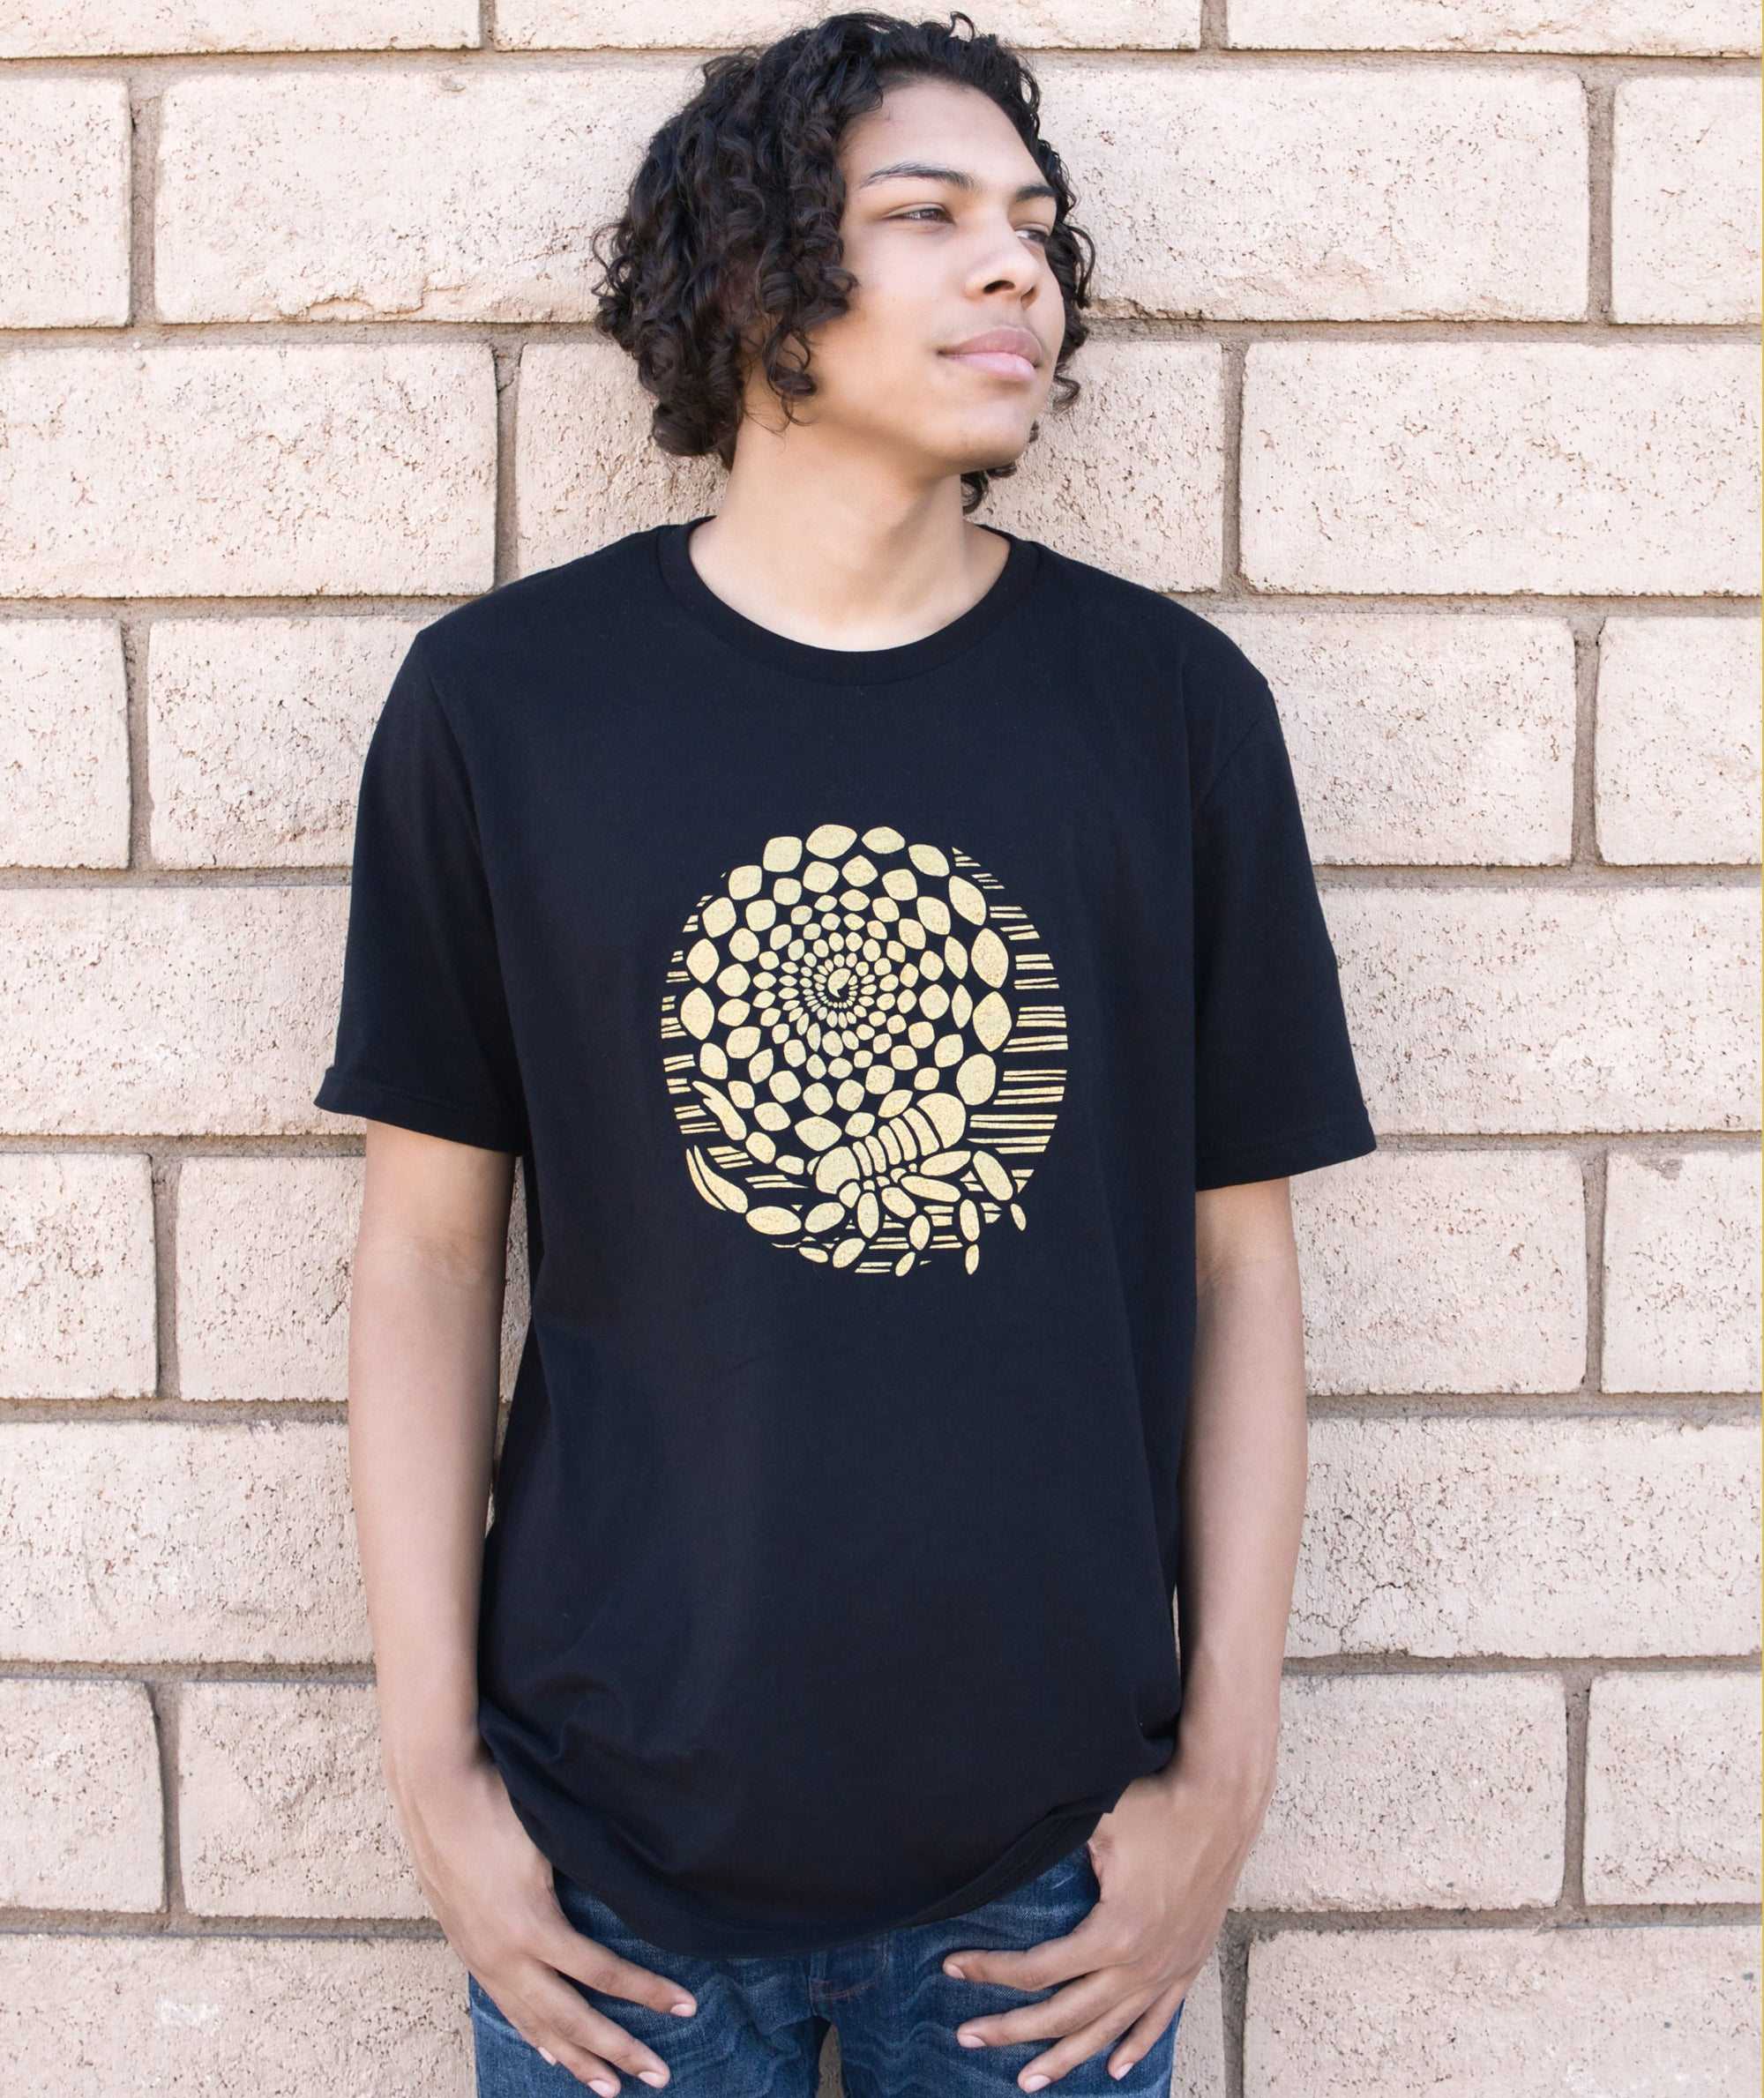 Desert Gold Scorpion T-shirt in Black Modeled by Andrew Clark